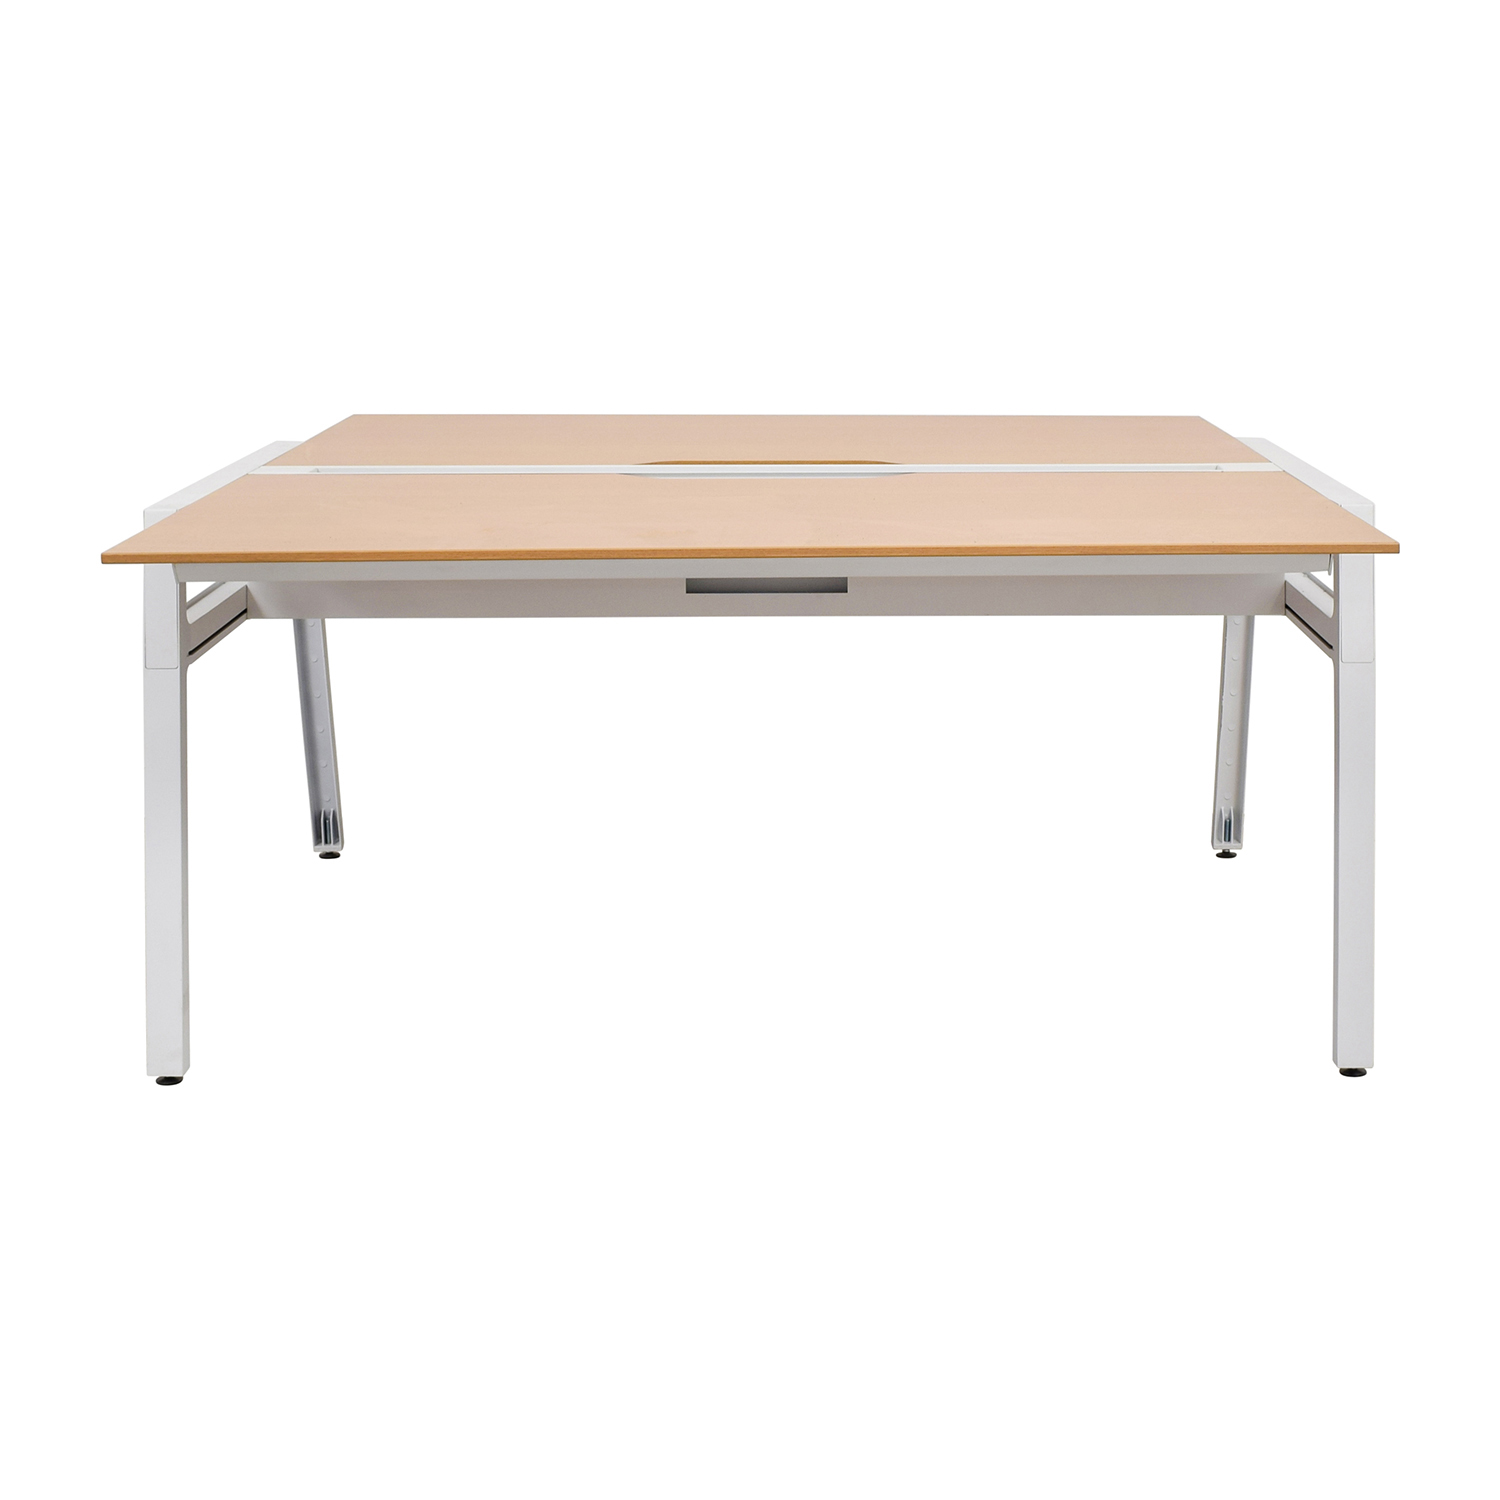 Poppin Steelcase Bivi Two Person Beech Wood Desk sale